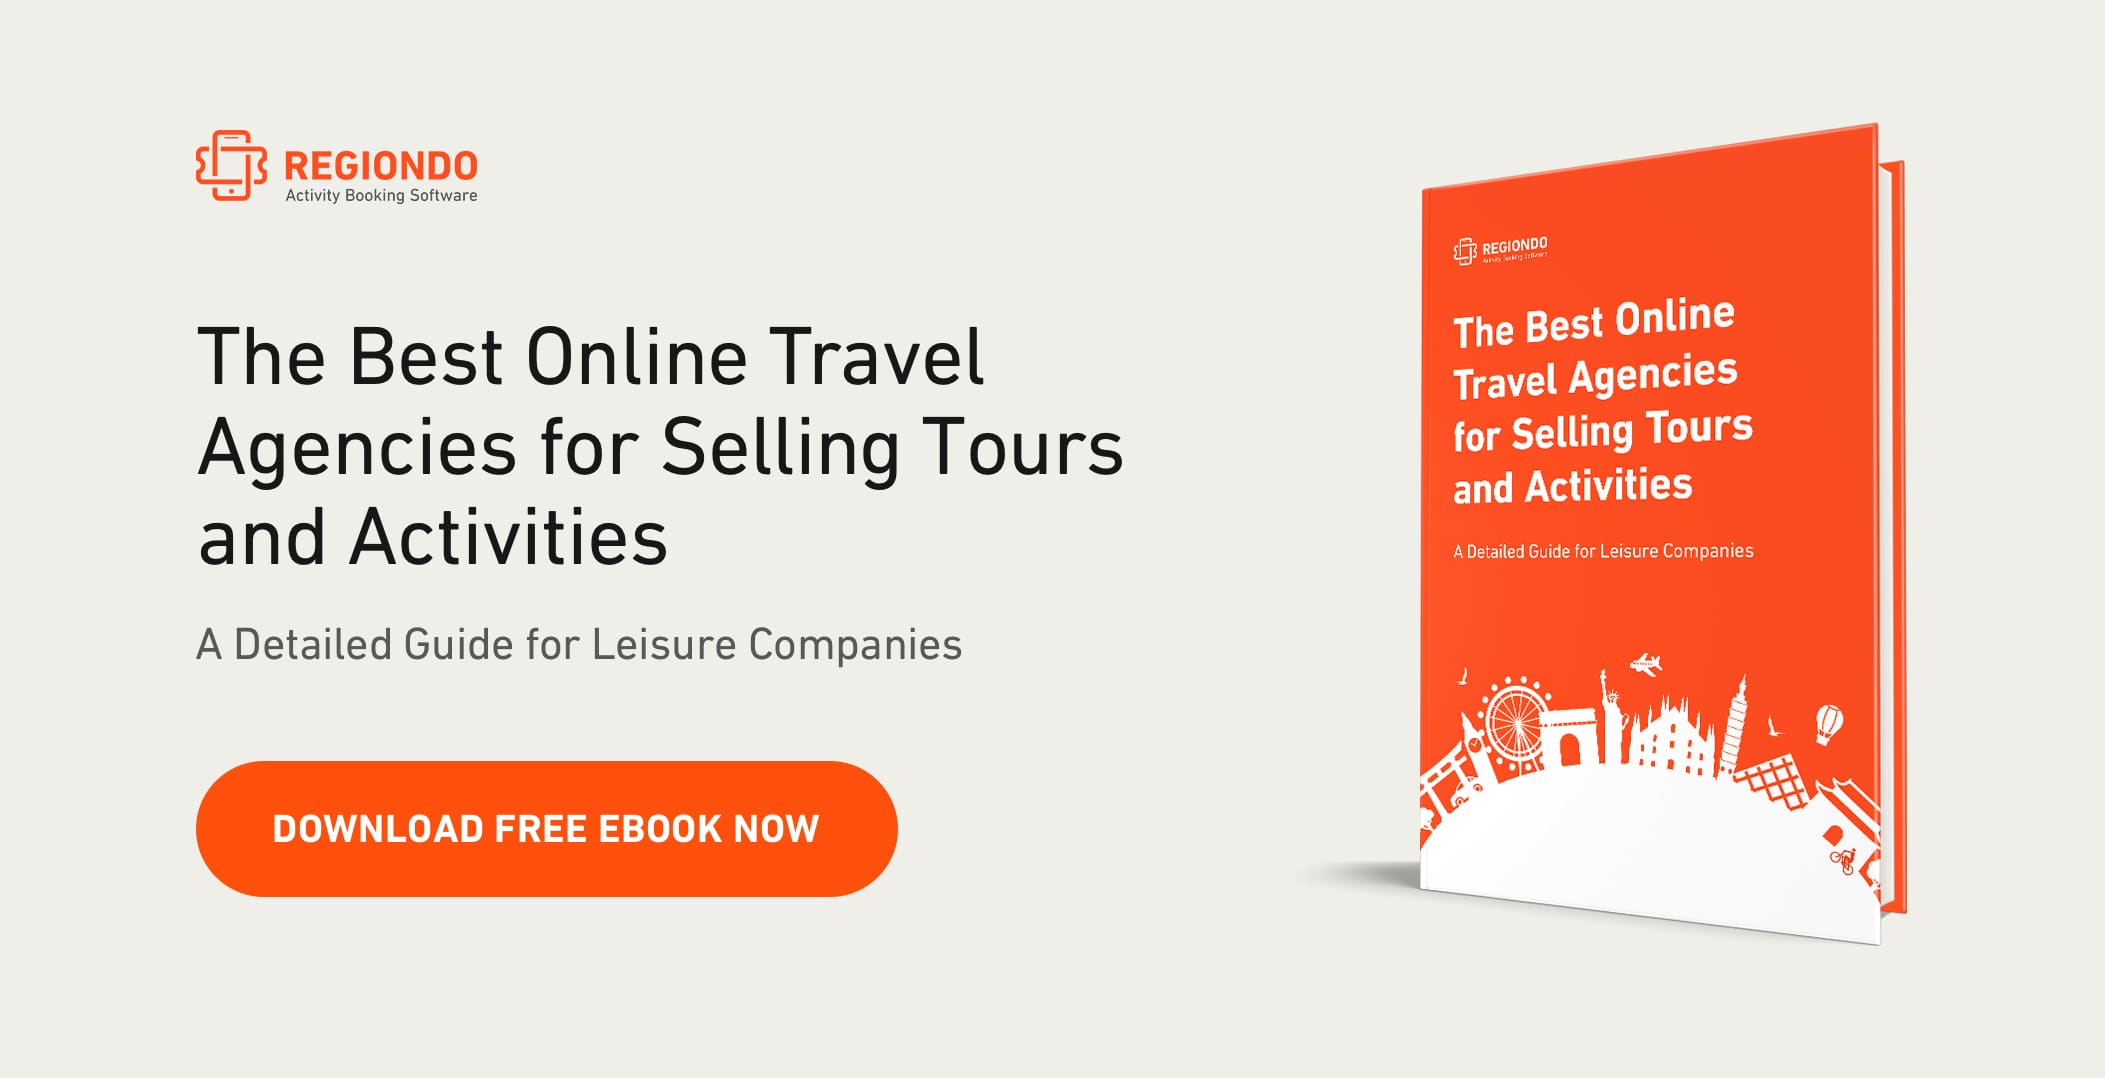 The Best Online Travel Agencies for Selling Tours and Activities